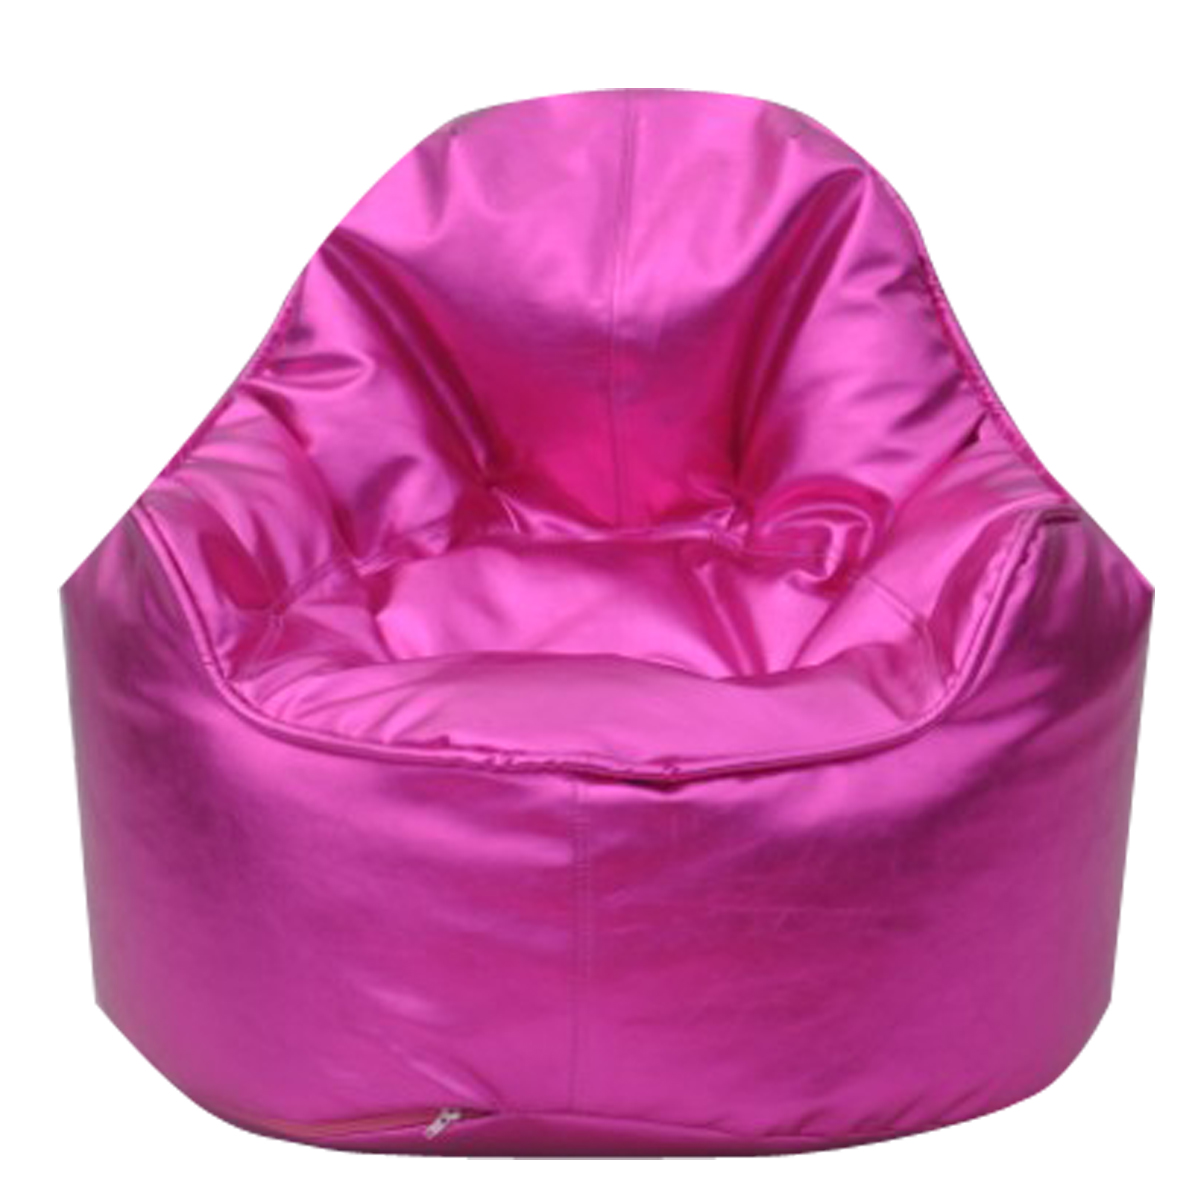 Superb Mini Me Pod Bean Bag Chair Purple Inzonedesignstudio Interior Chair Design Inzonedesignstudiocom